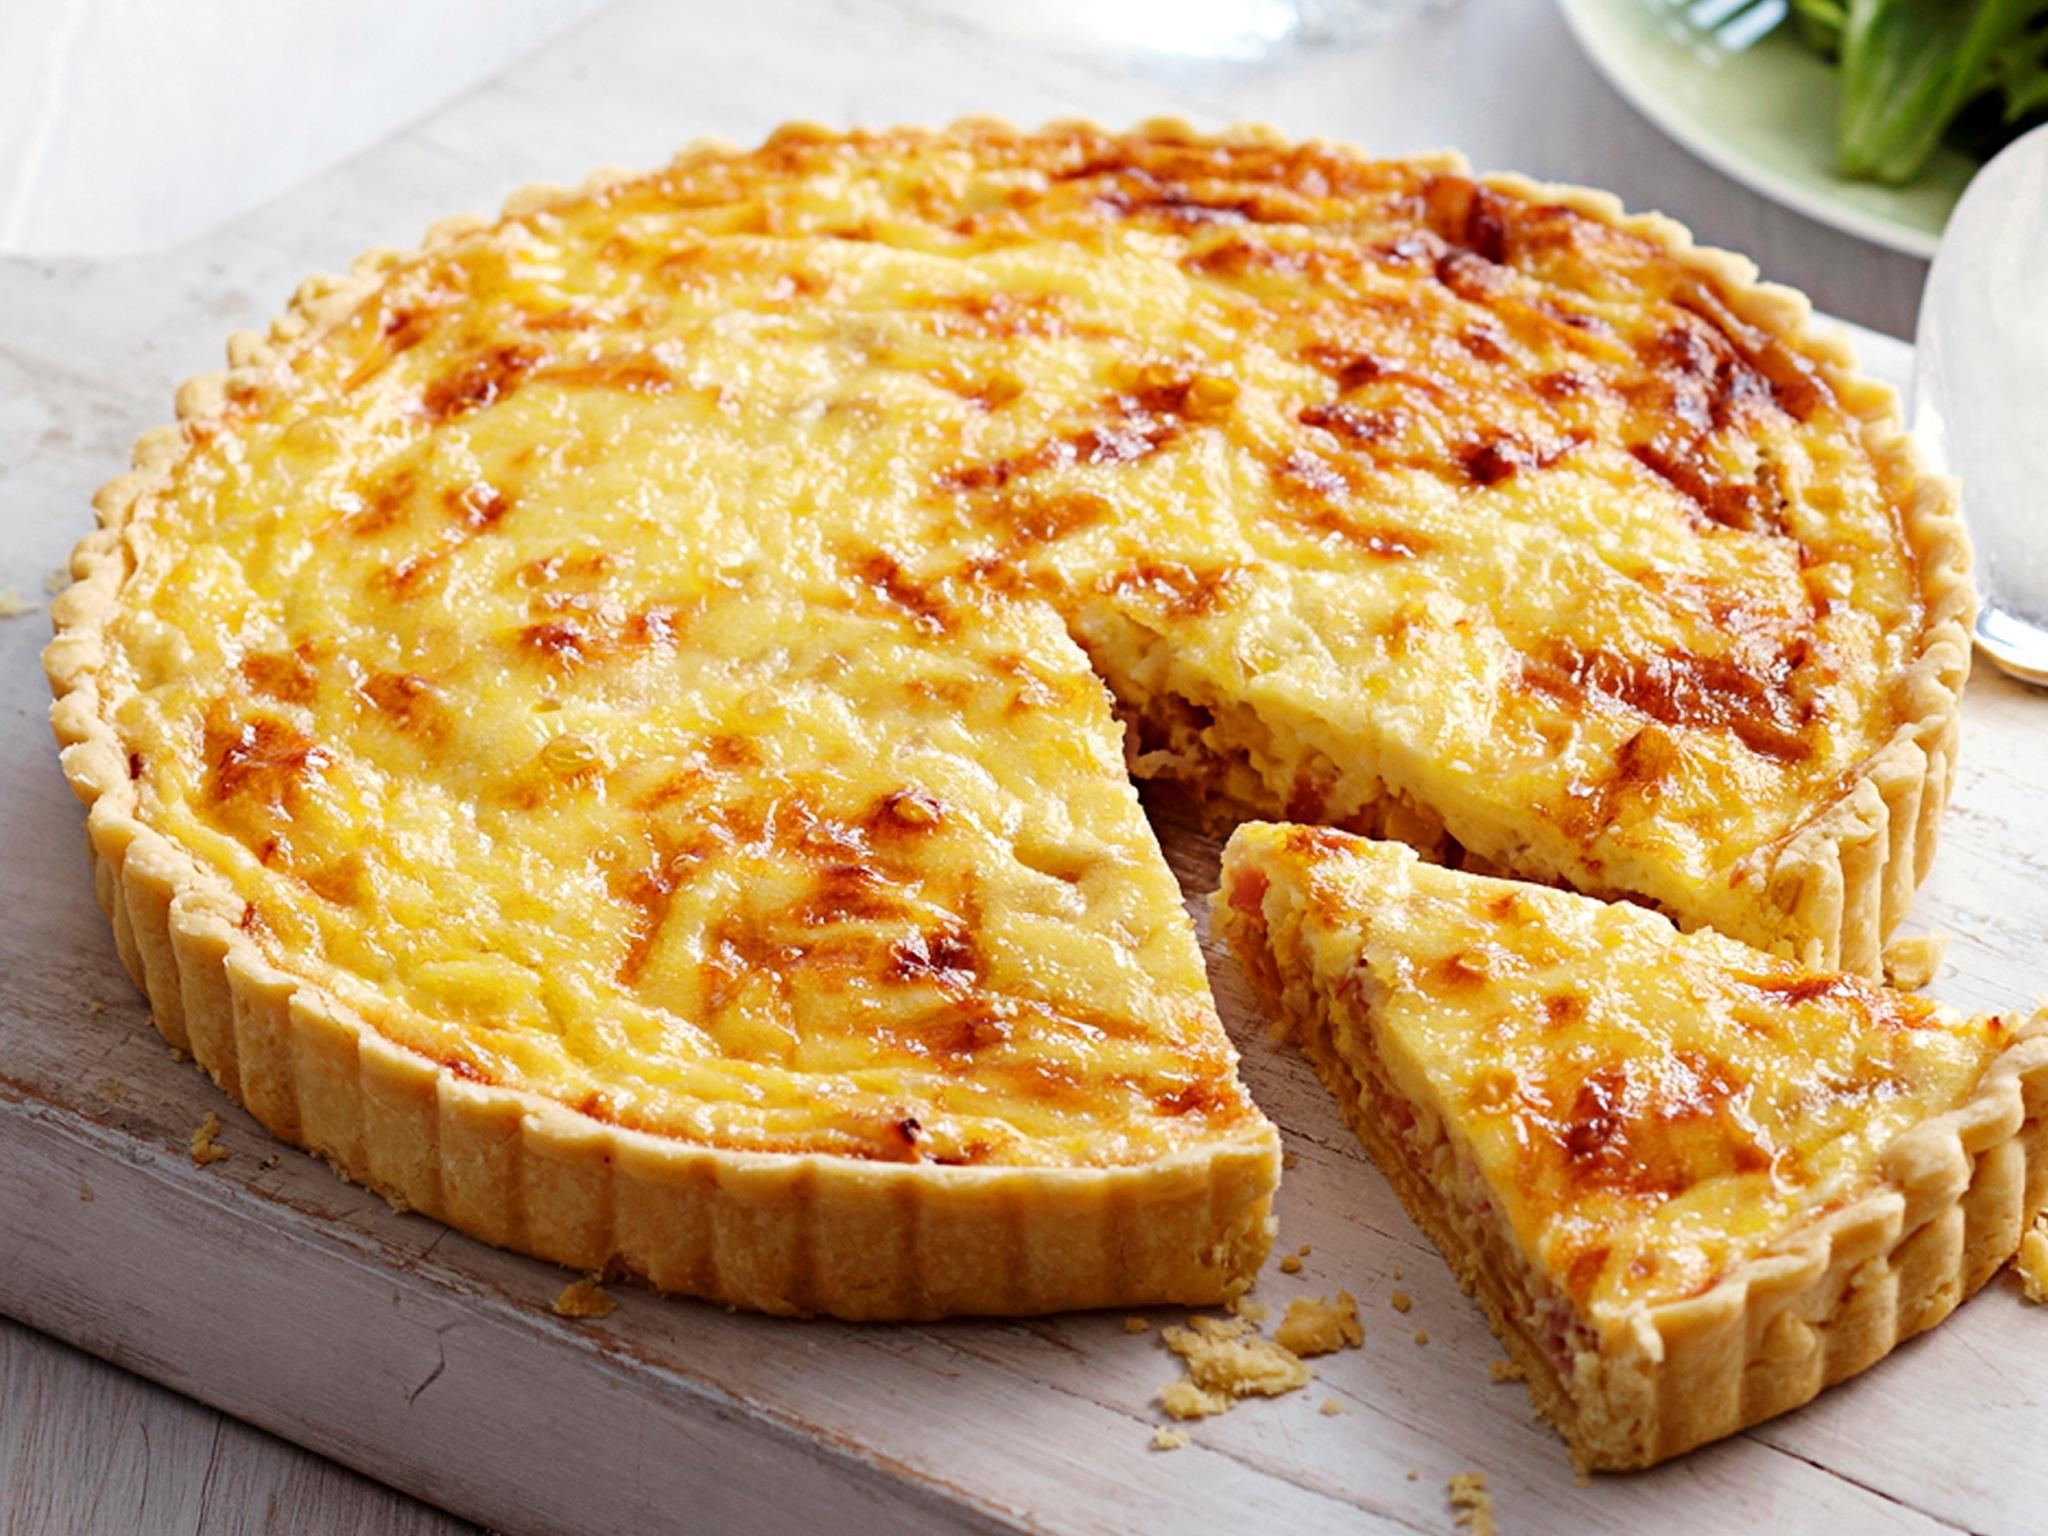 Quiche lorraine recipe pastry cook shortcrust pastry for Shortcrust pastry ingredients